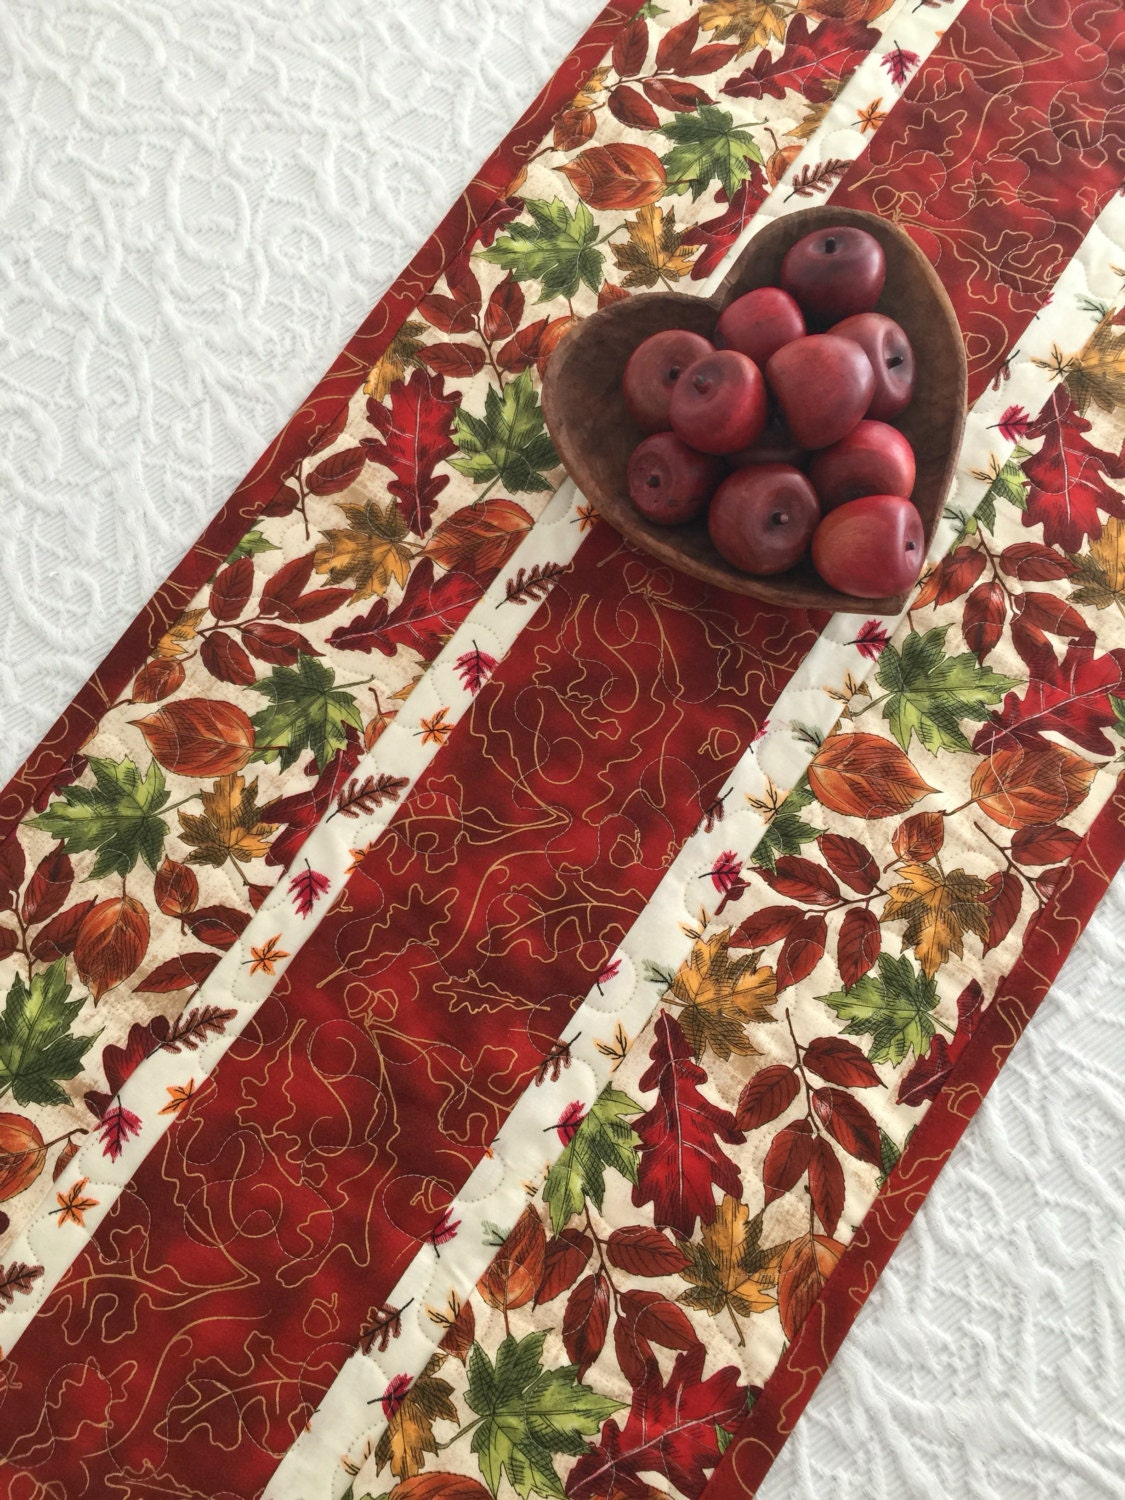 Fall autumn leaves table runner quilt red green by keriquilts for Table runner quilt design